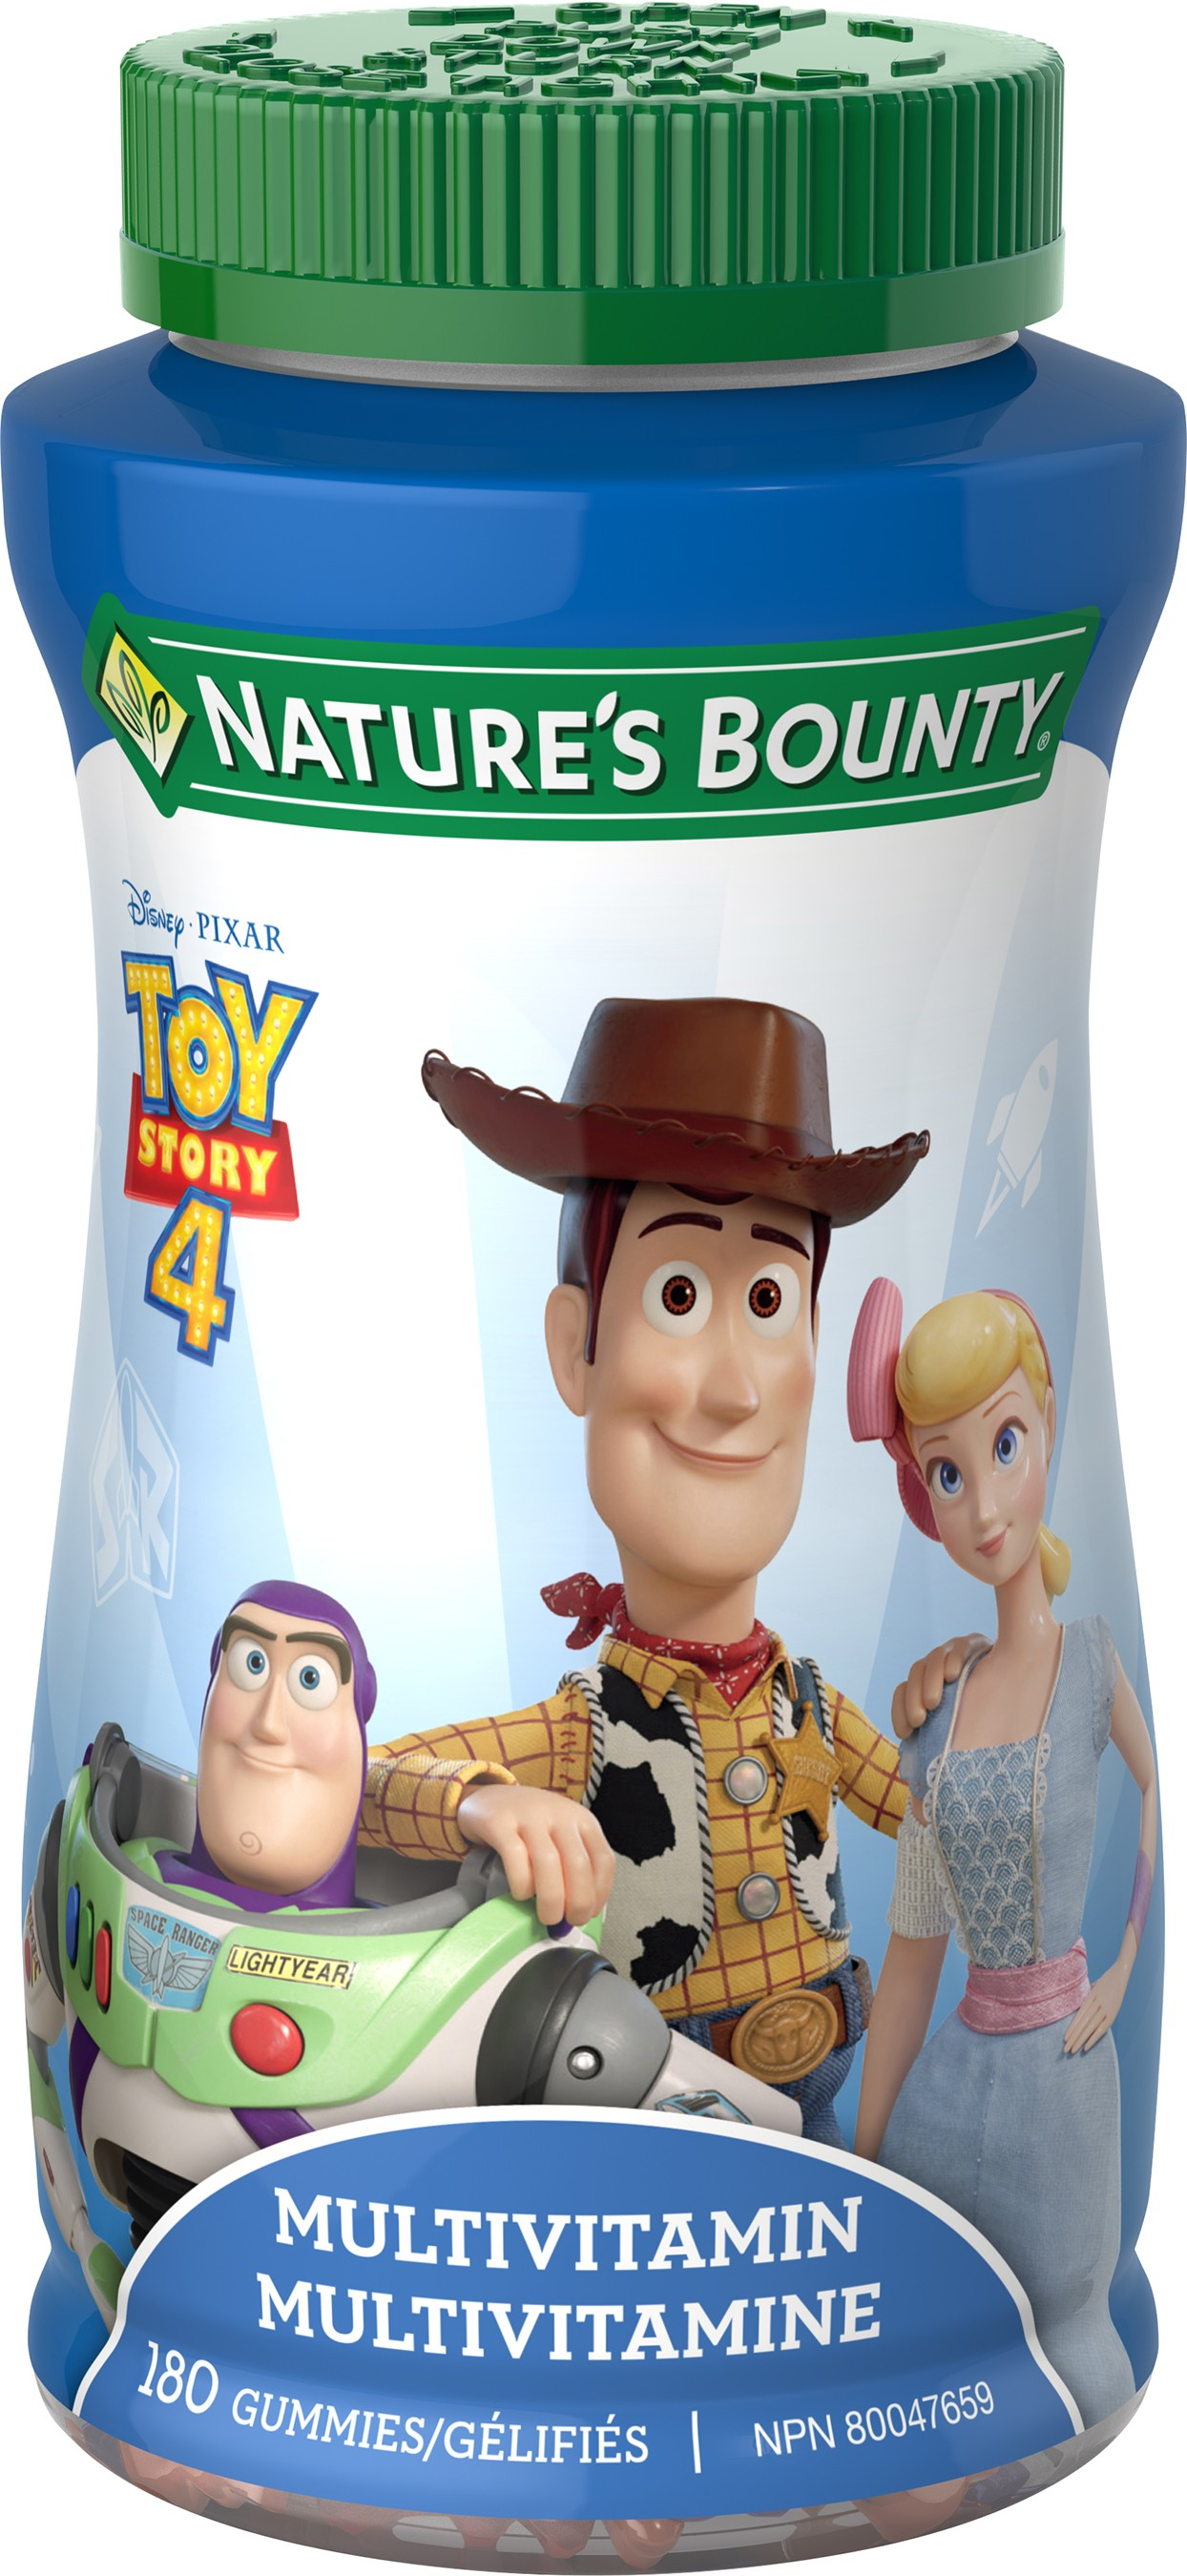 Nature's Bounty Toy Story 4 Multivitamin Gummies